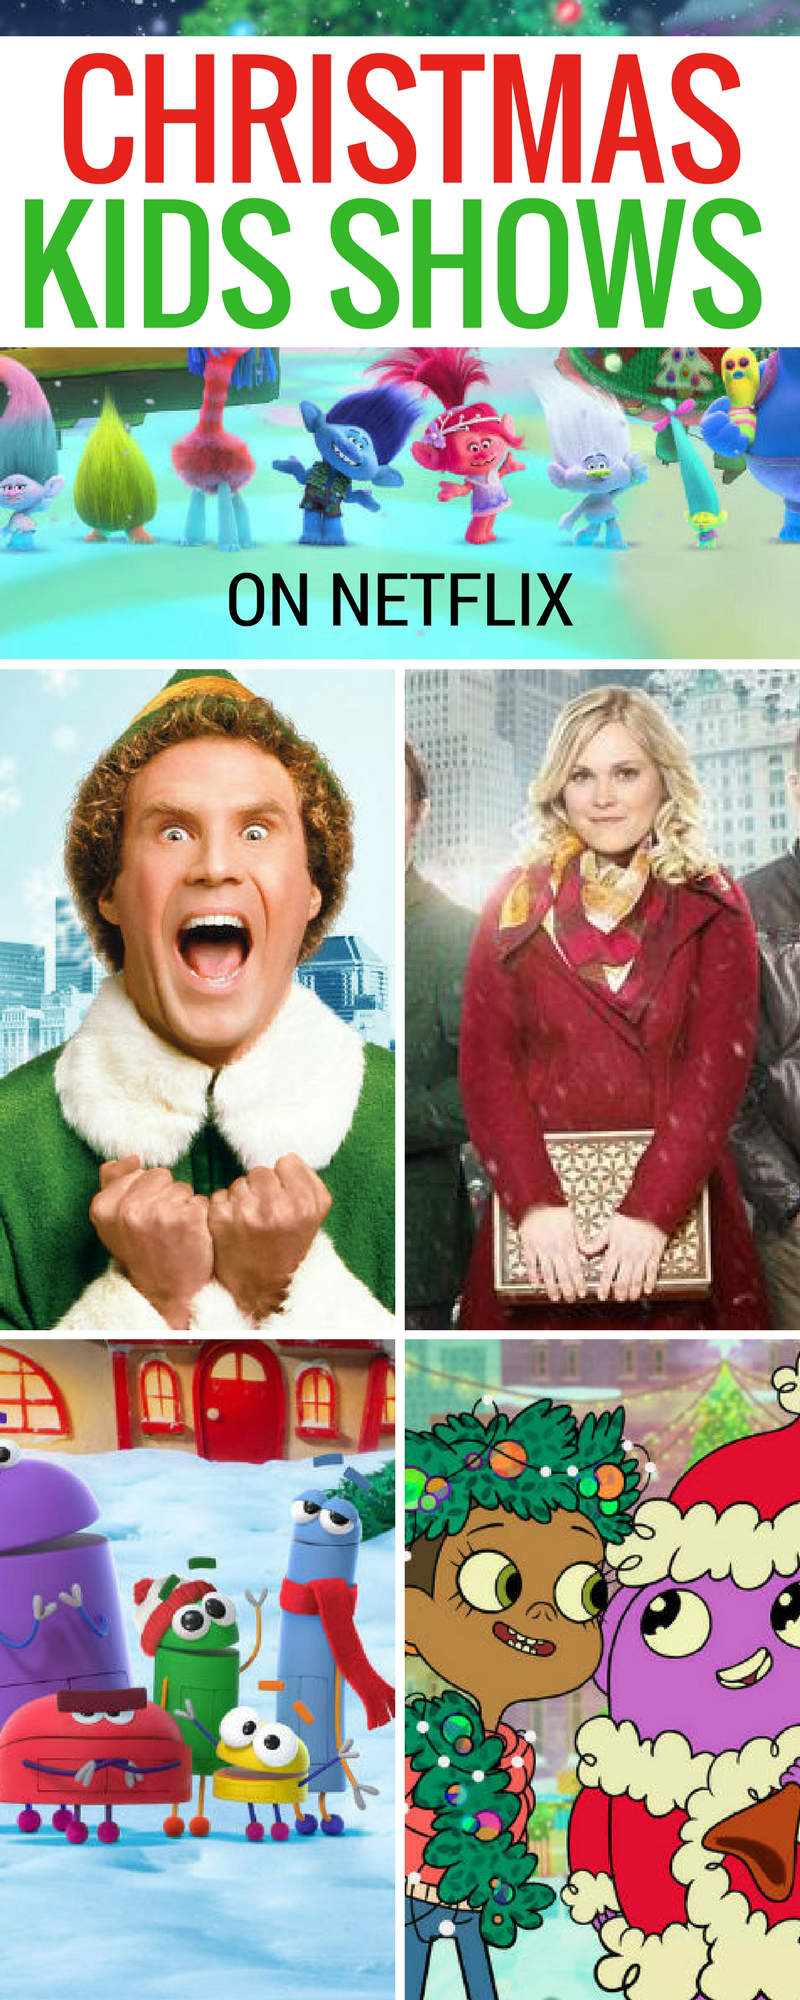 Christmas Shows 2020 Christmas Shows On Netflix 2020 | Uwwvwb.howtocelebrate2020.info